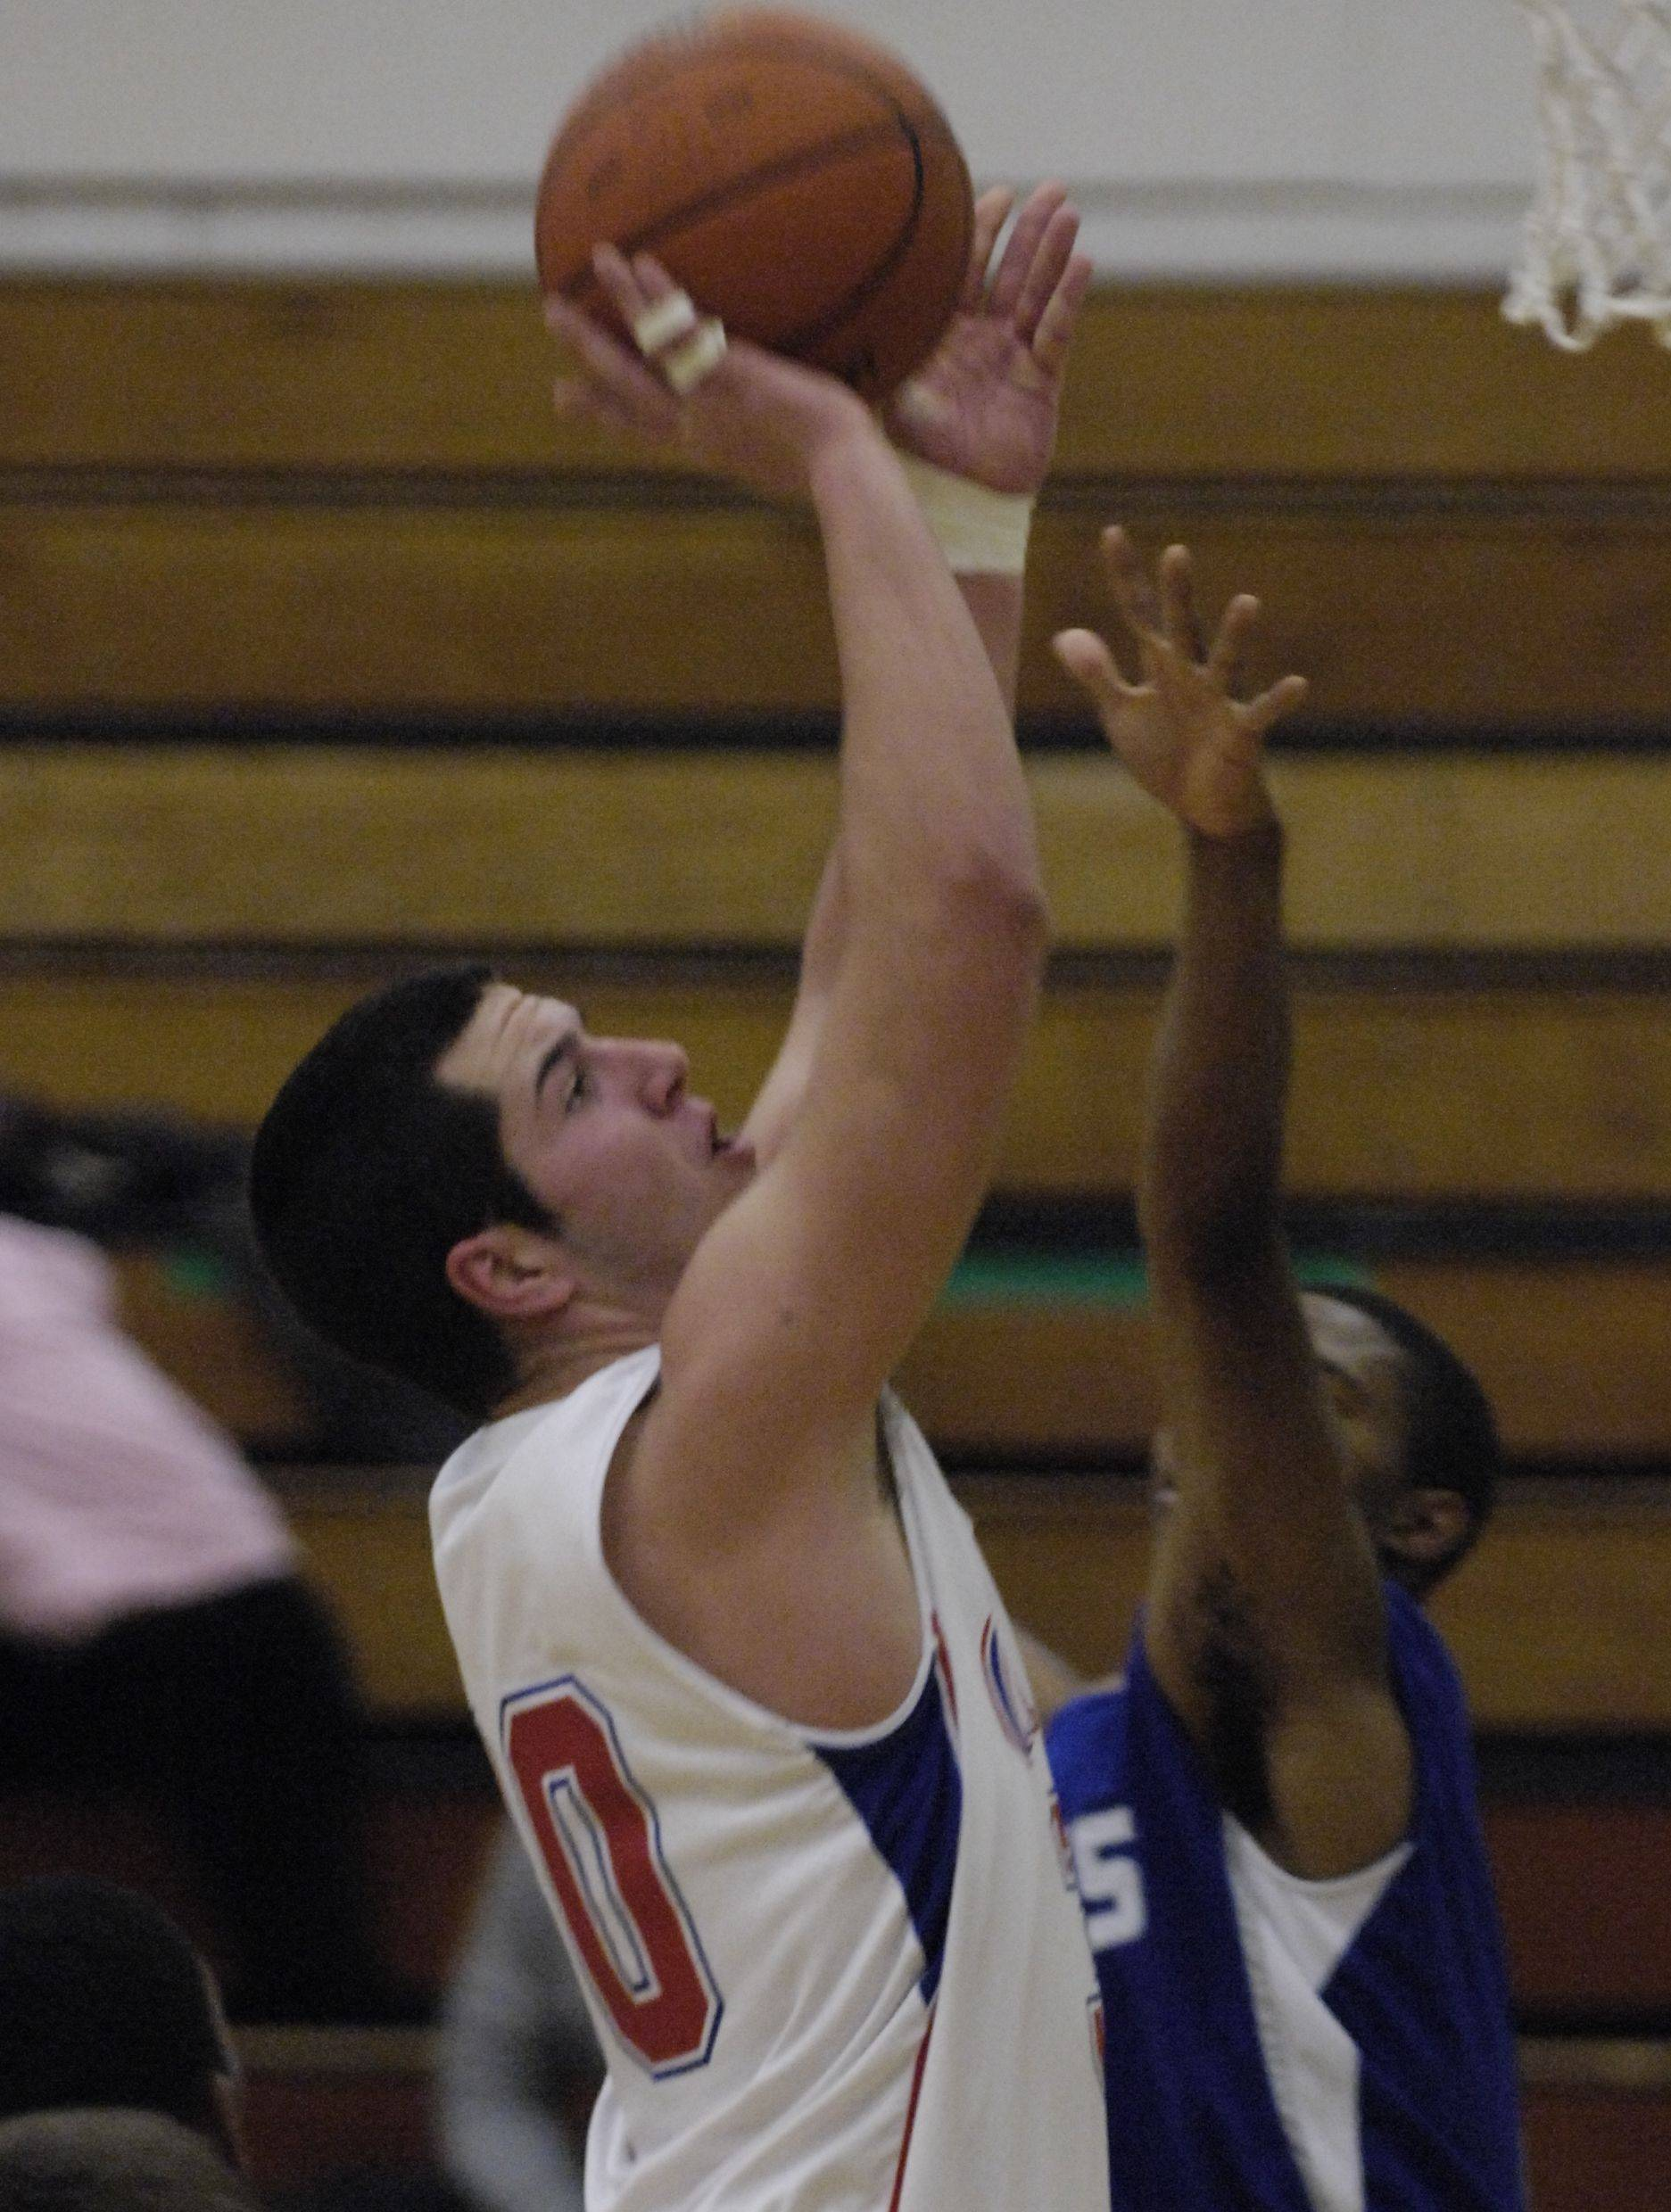 Images from the Marmion Academy vs. Brooks boys basketball game Wednesday, December 22, 2010.